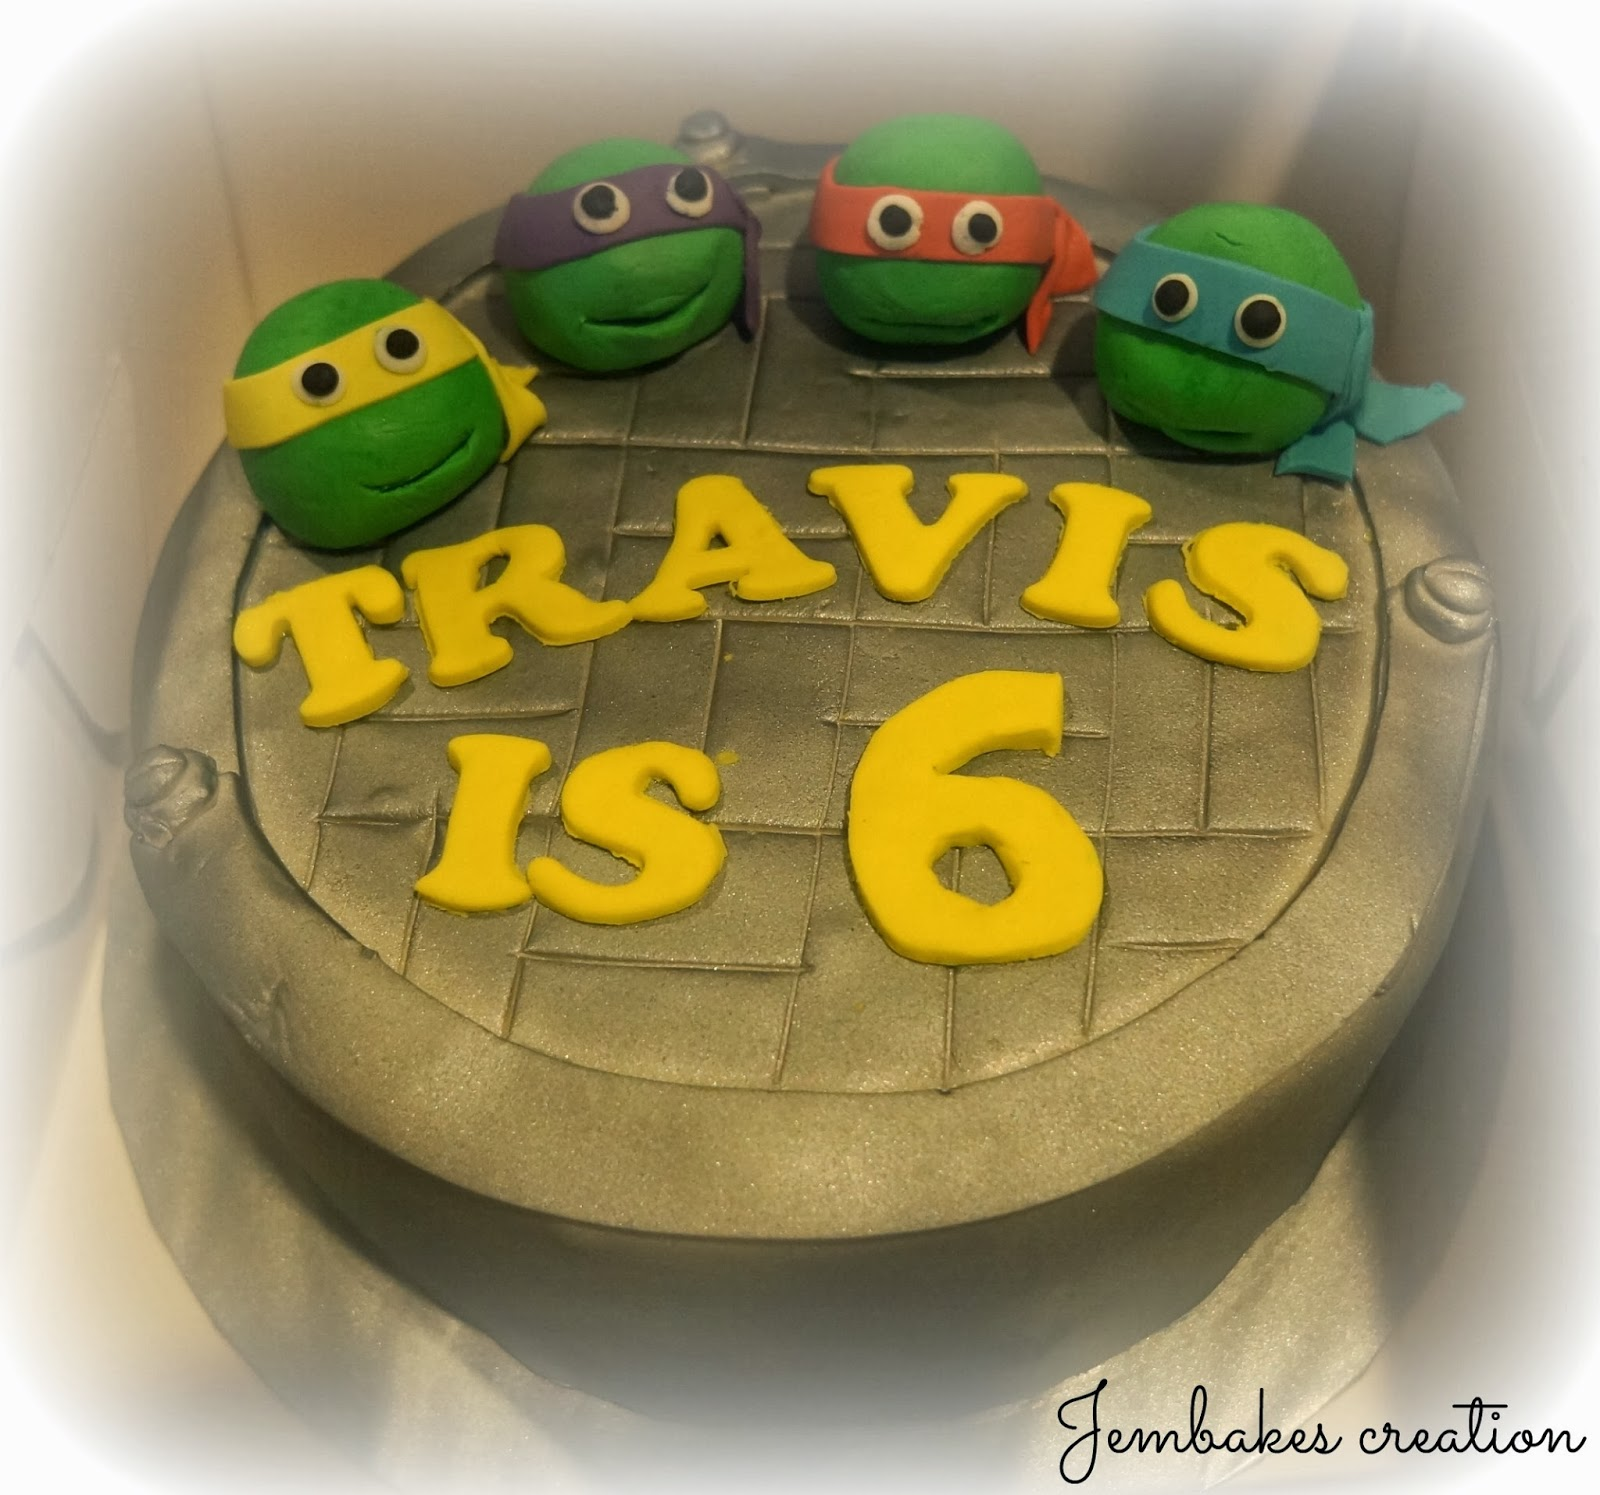 Jembakes Ninja turtle cake Lightning Mcqueen cake and